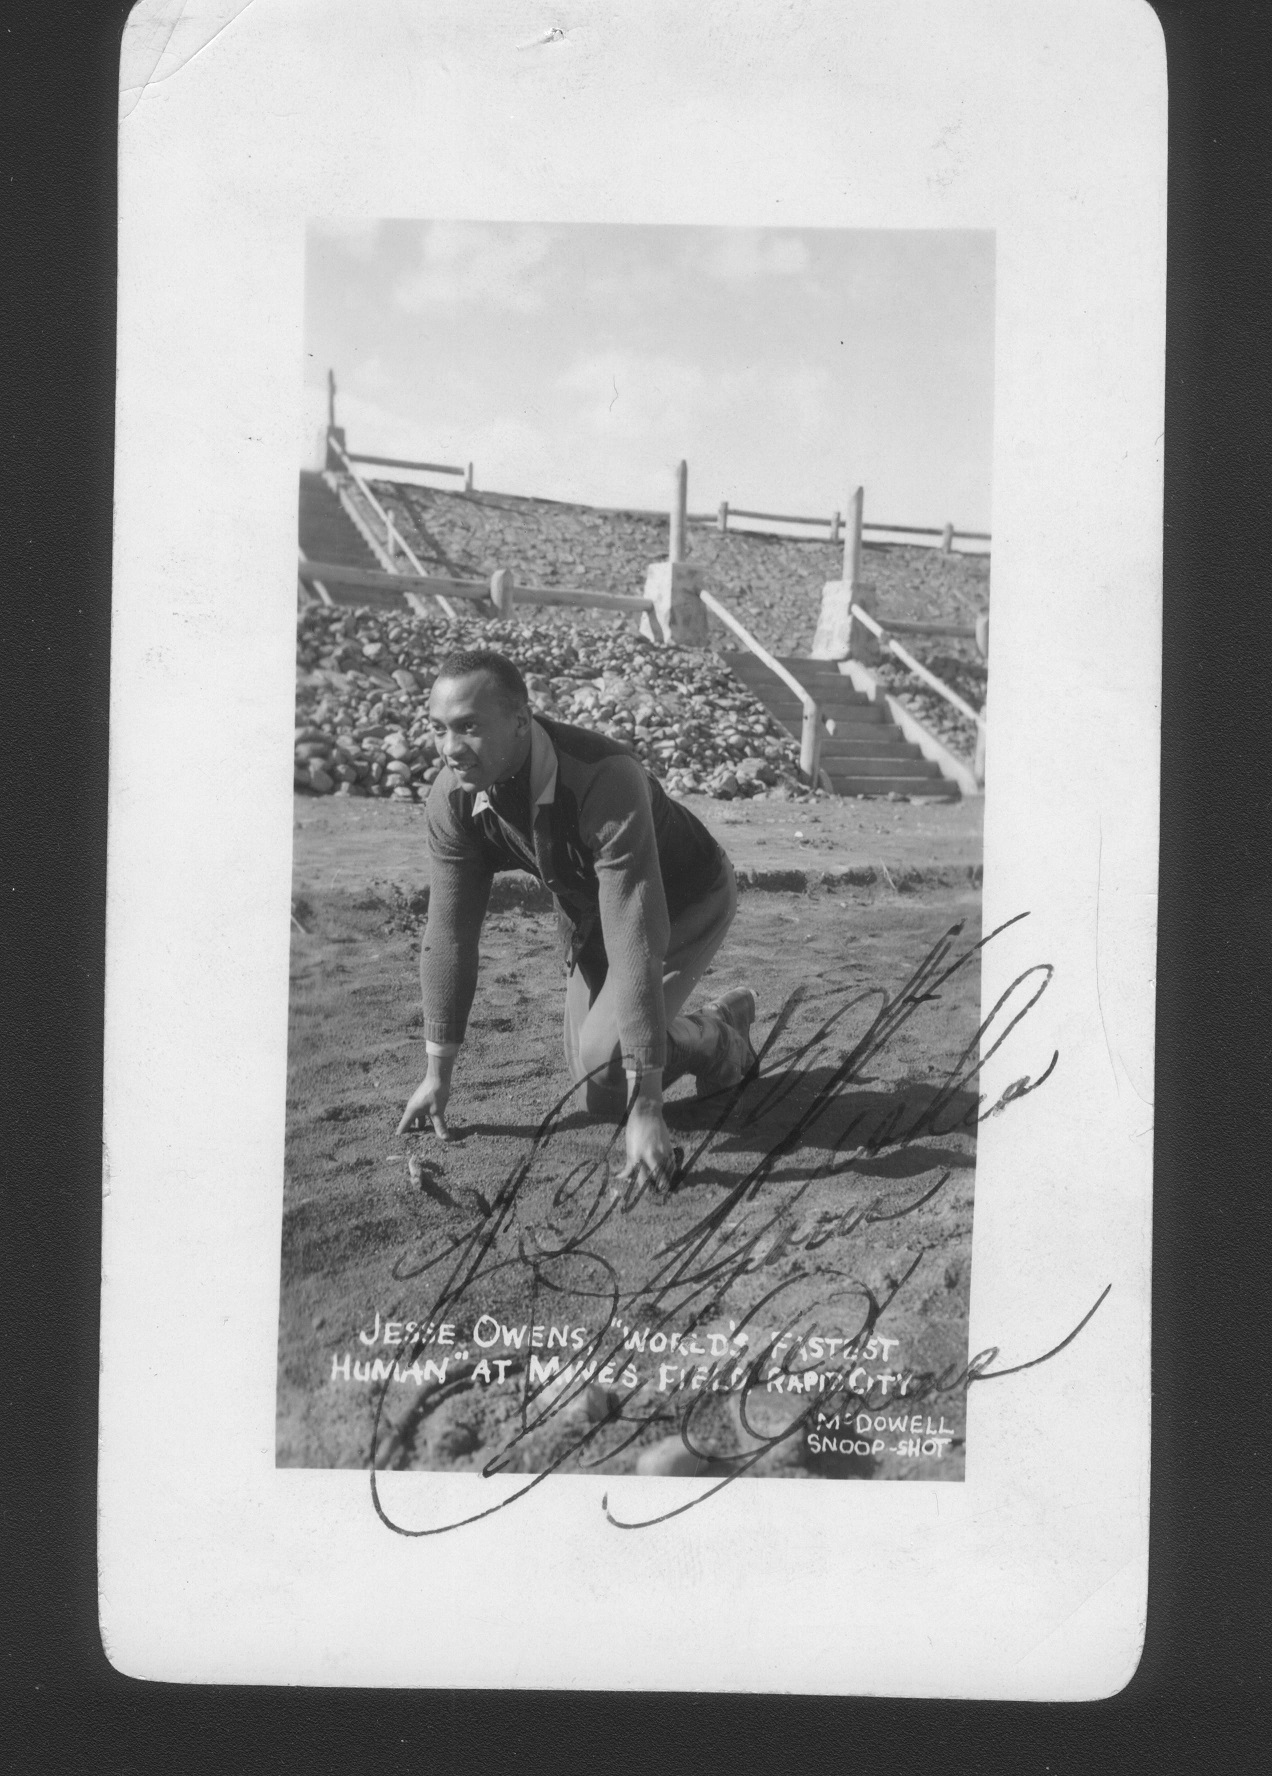 jesse owens photo autograph collector sports purchase prices  jesse owens photo autograph jo 1 resize jpg